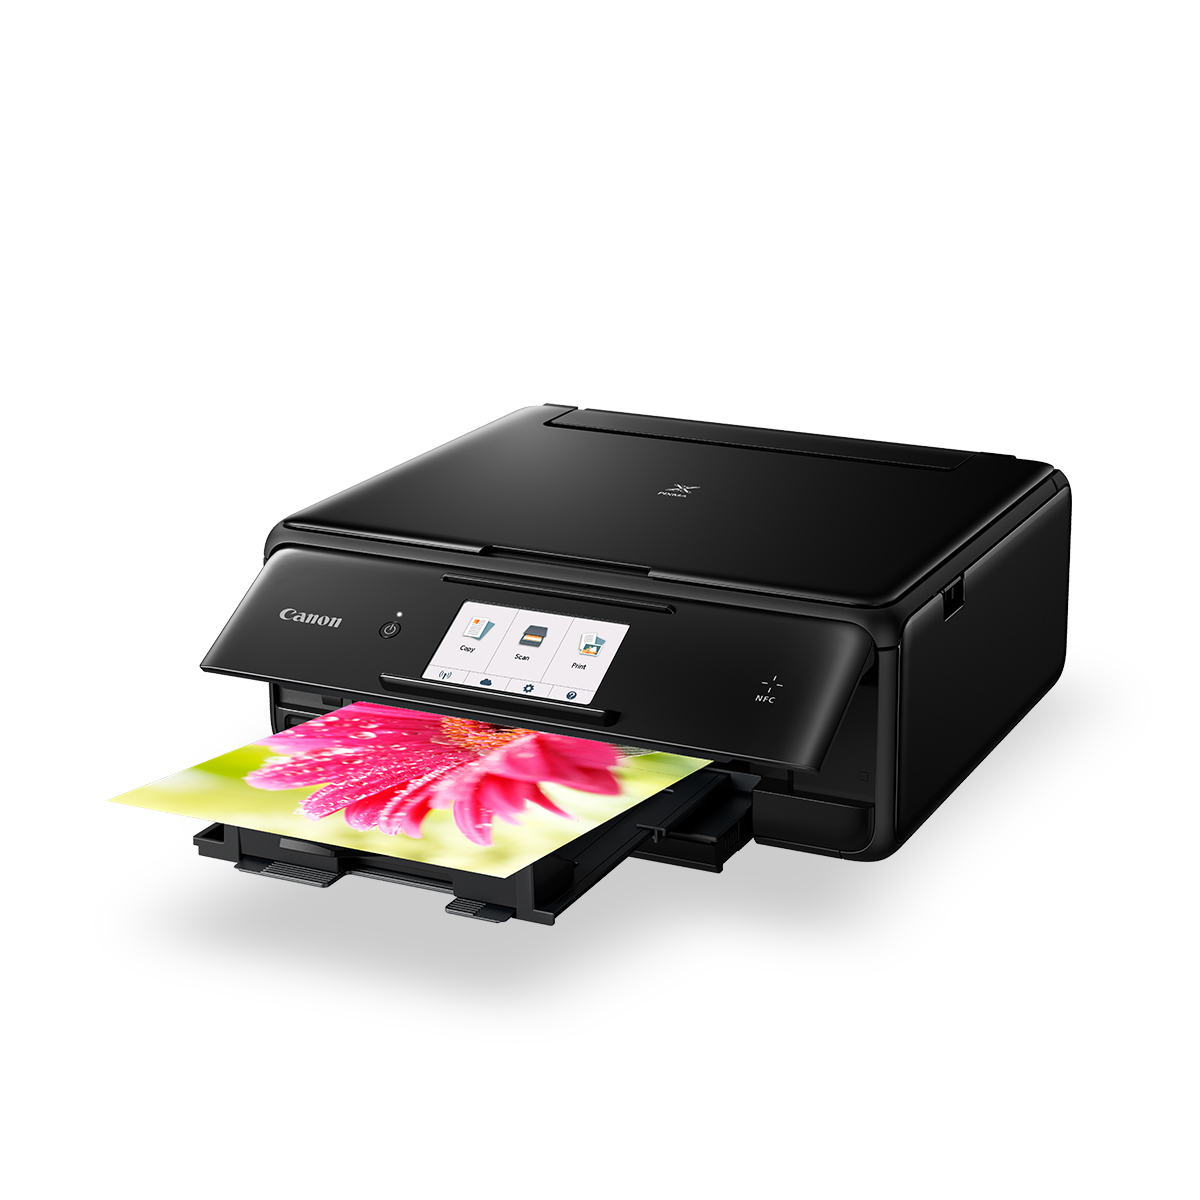 PIXMA TS8060 black front angled with shadow